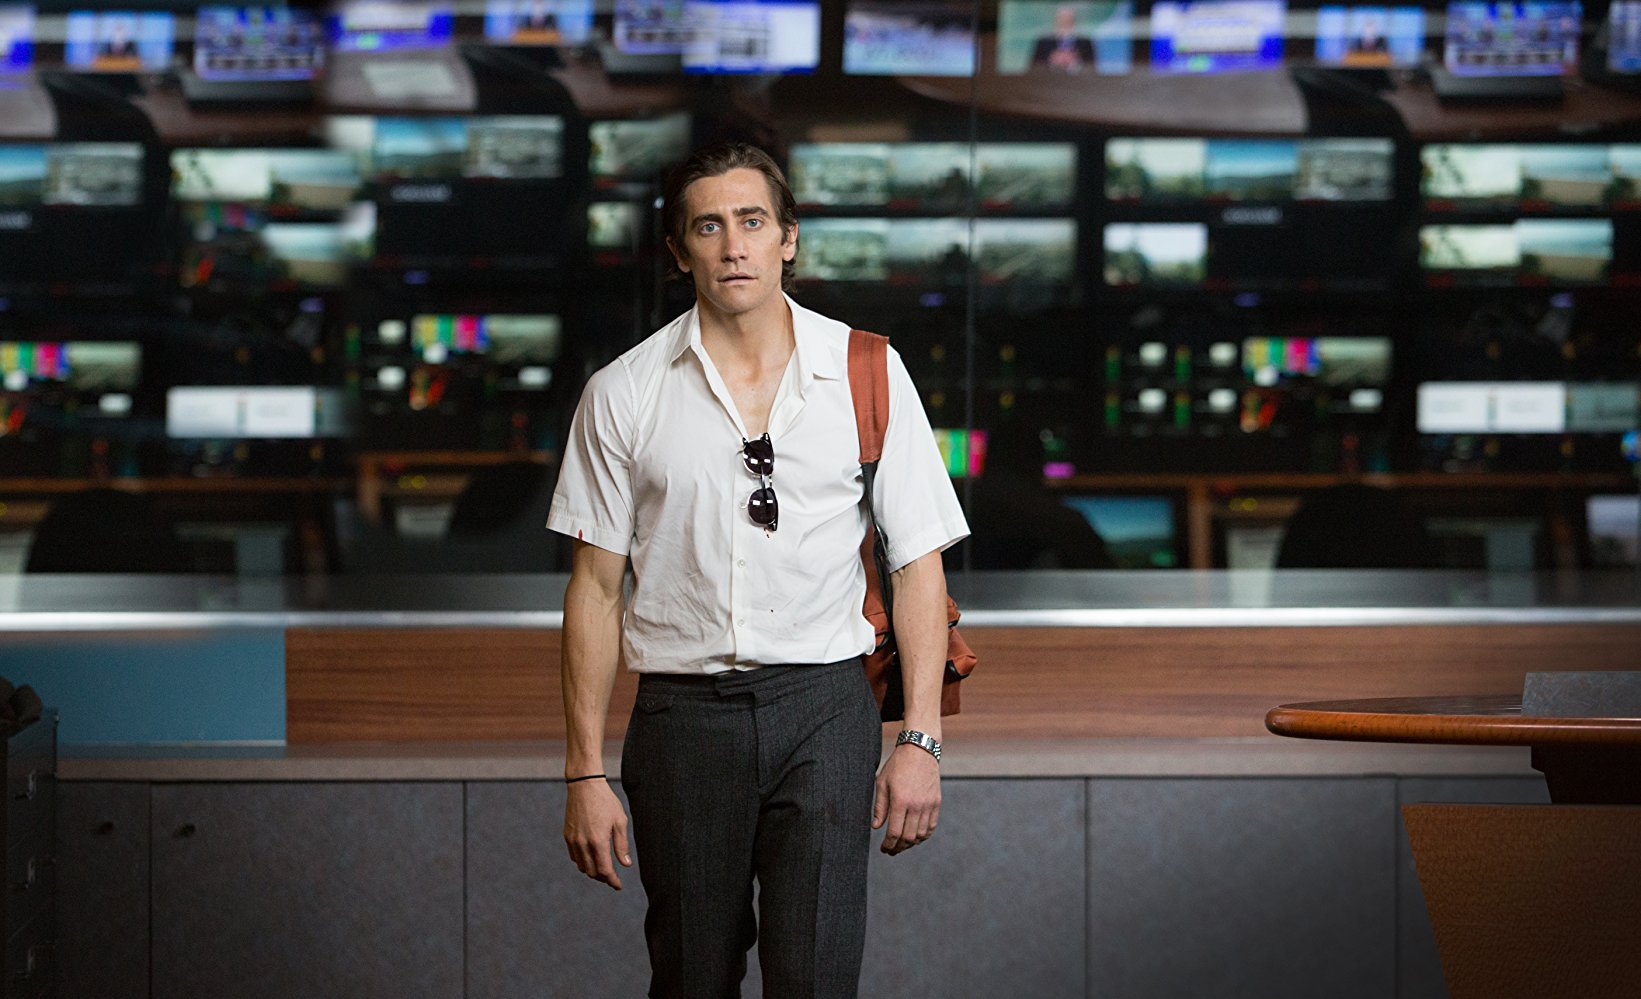 jake gyllenhaal in nightcrawler (2014) best roles of jake gyllenhaal